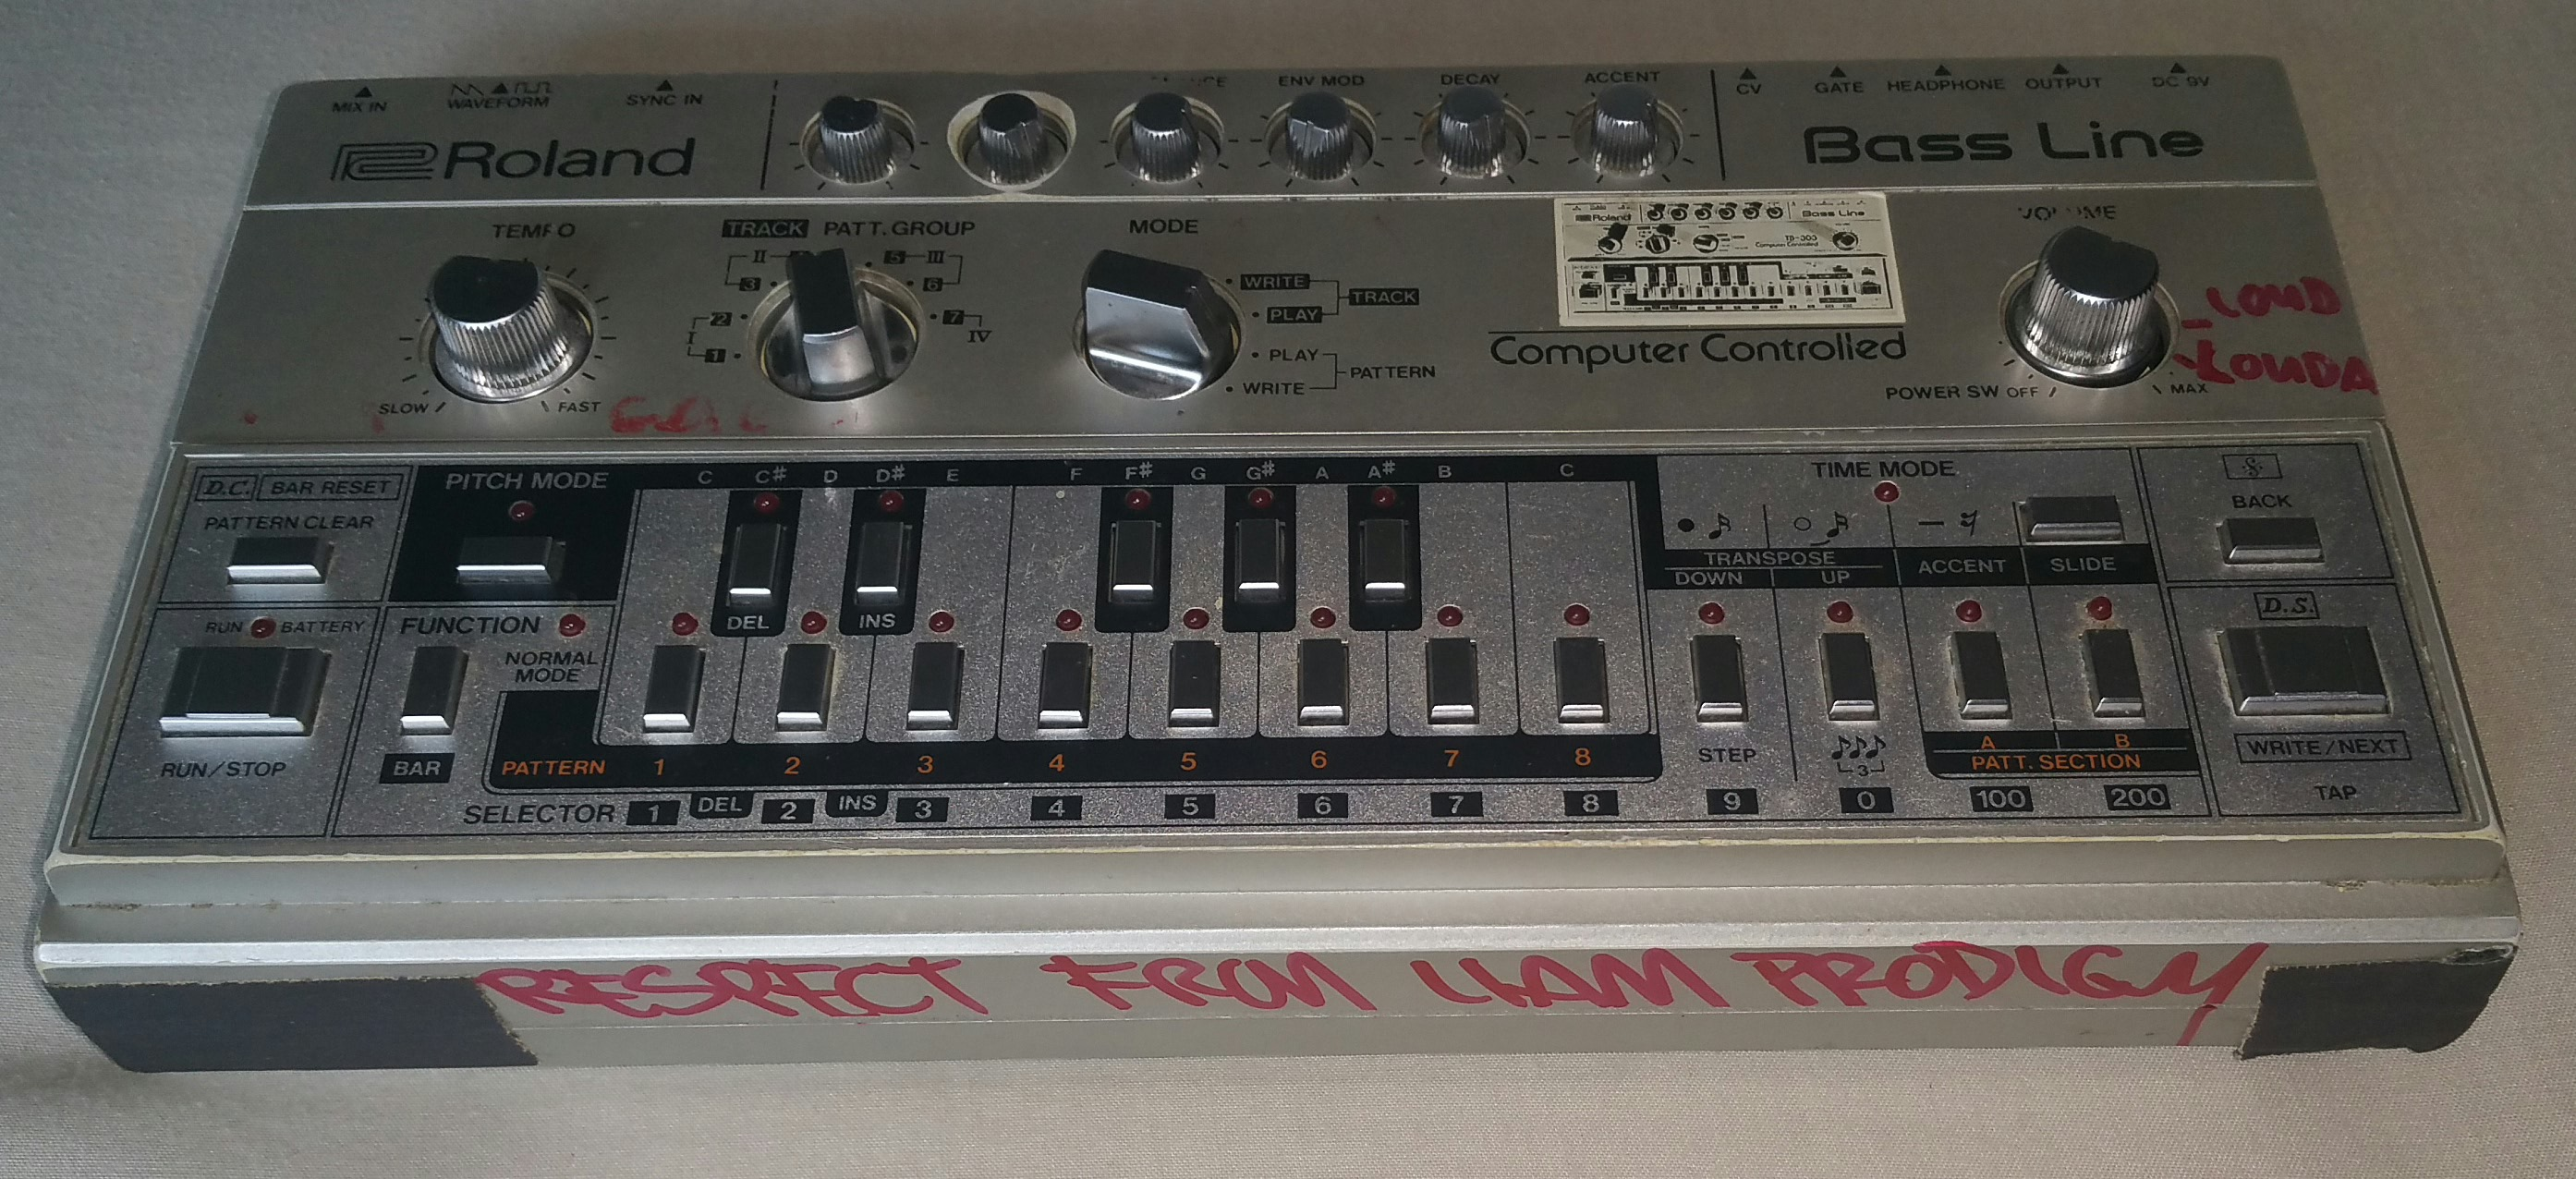 Liam's original TB-303 was given away in charity auction